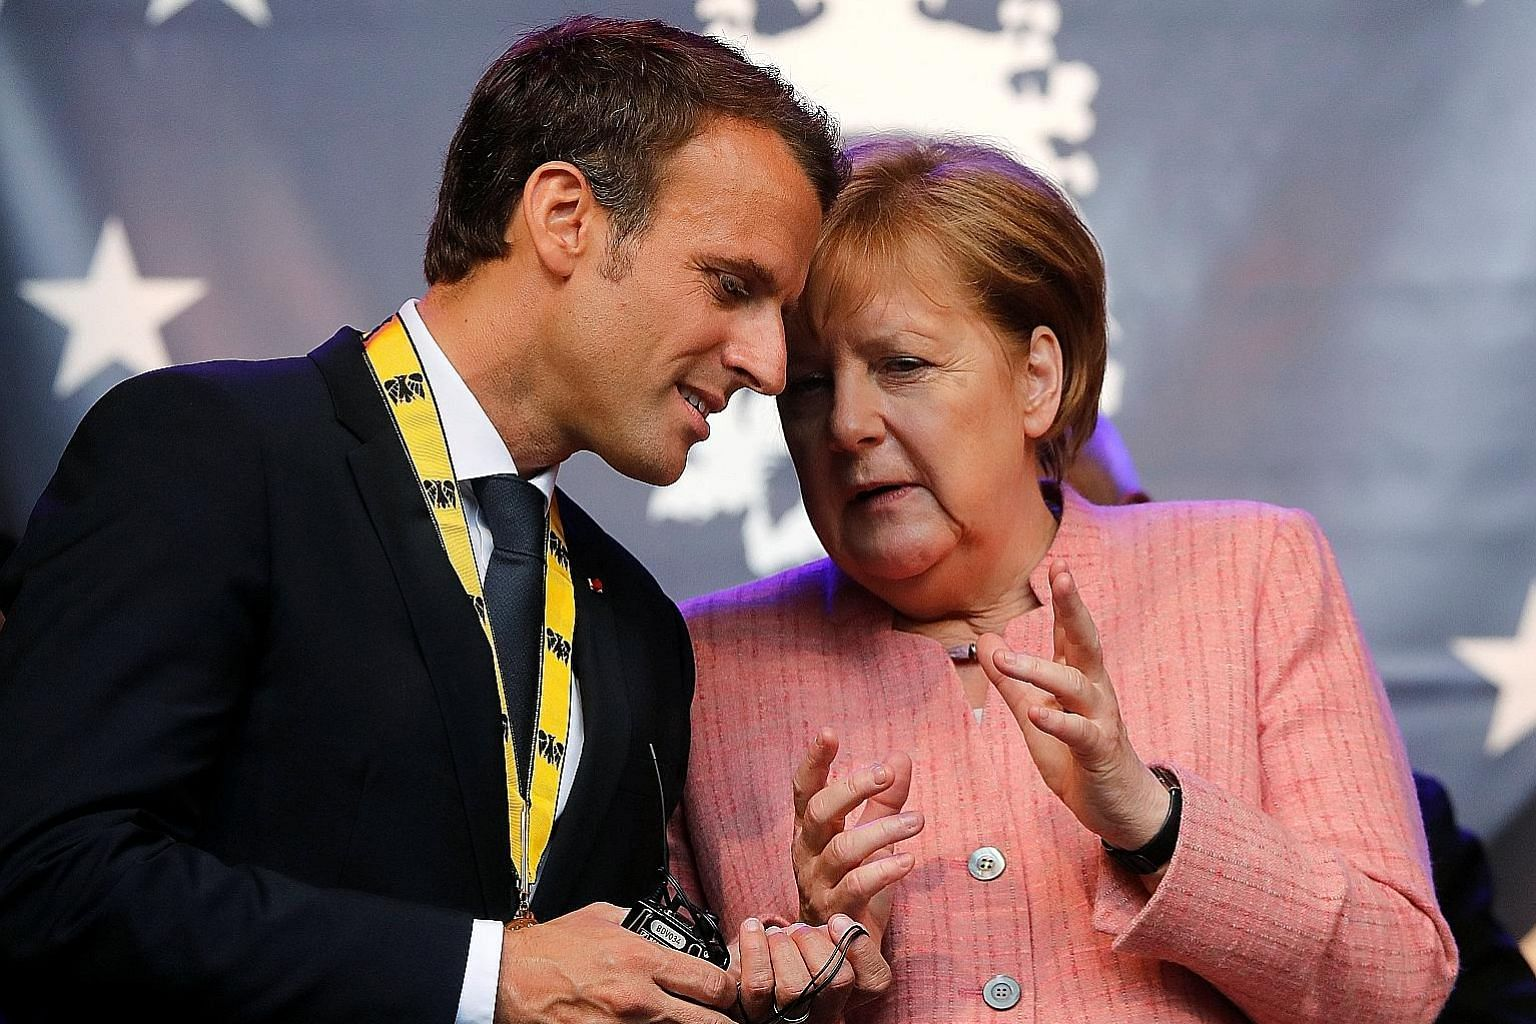 French President Emmanuel Macron with German Chancellor Angela Merkel after he was awarded the Charlemagne Prize in Aachen last year. In the German city next Tuesday, the two leaders will sign an agreement renewing the Elysee treaty of 1963.